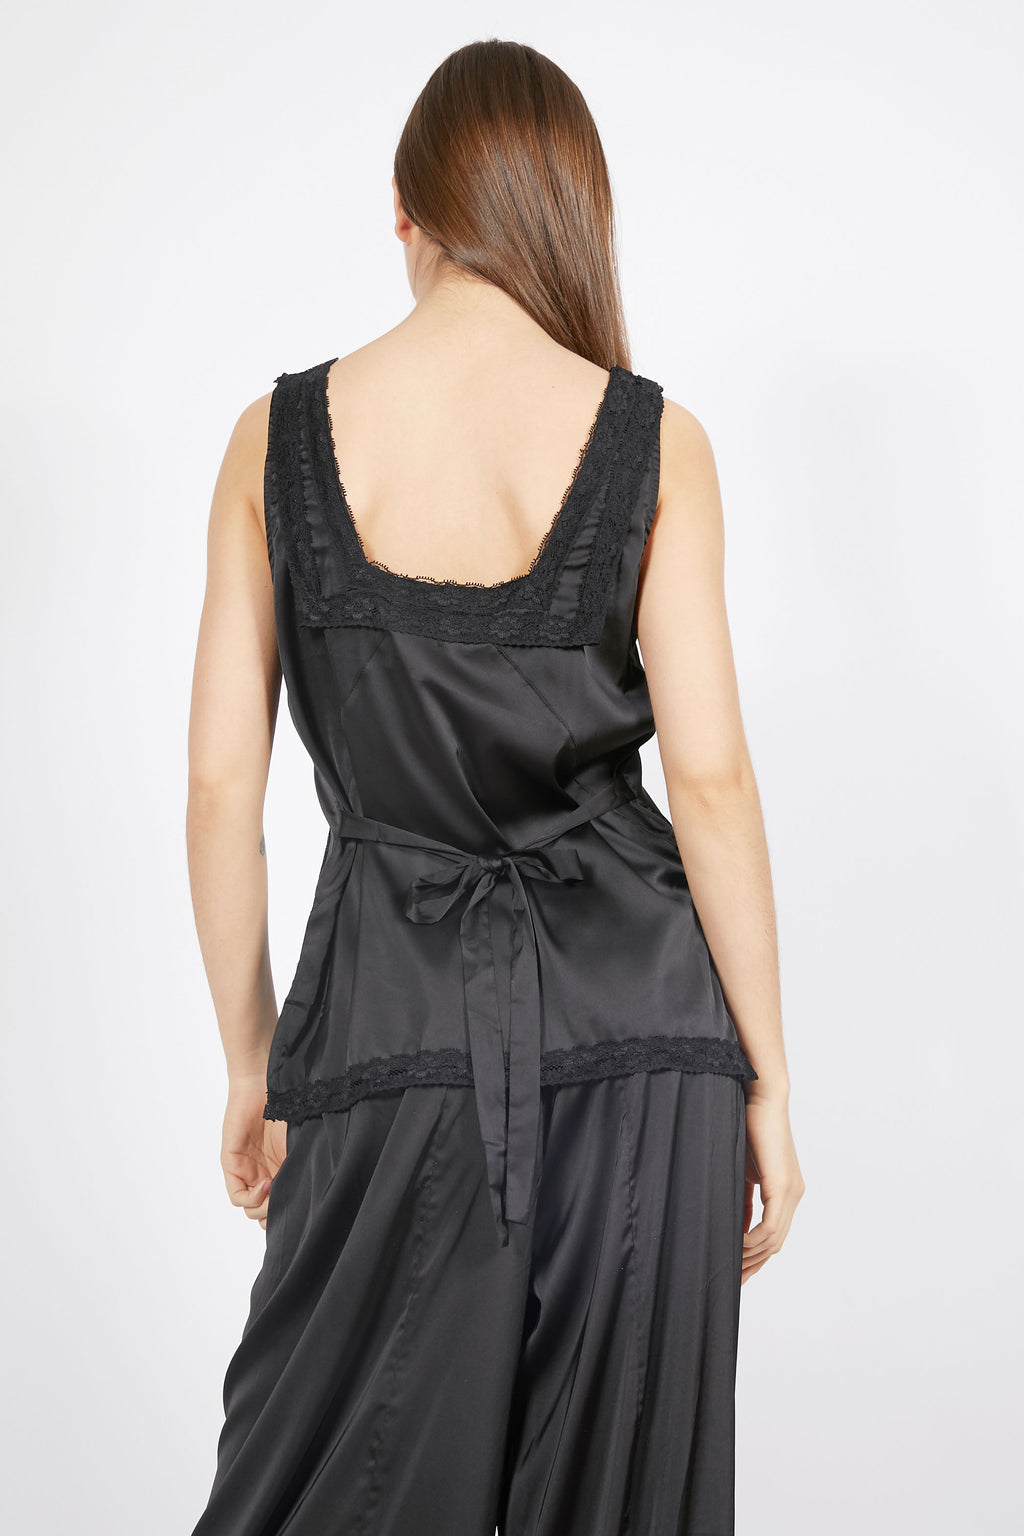 Vintage Inspired Black Satin Top